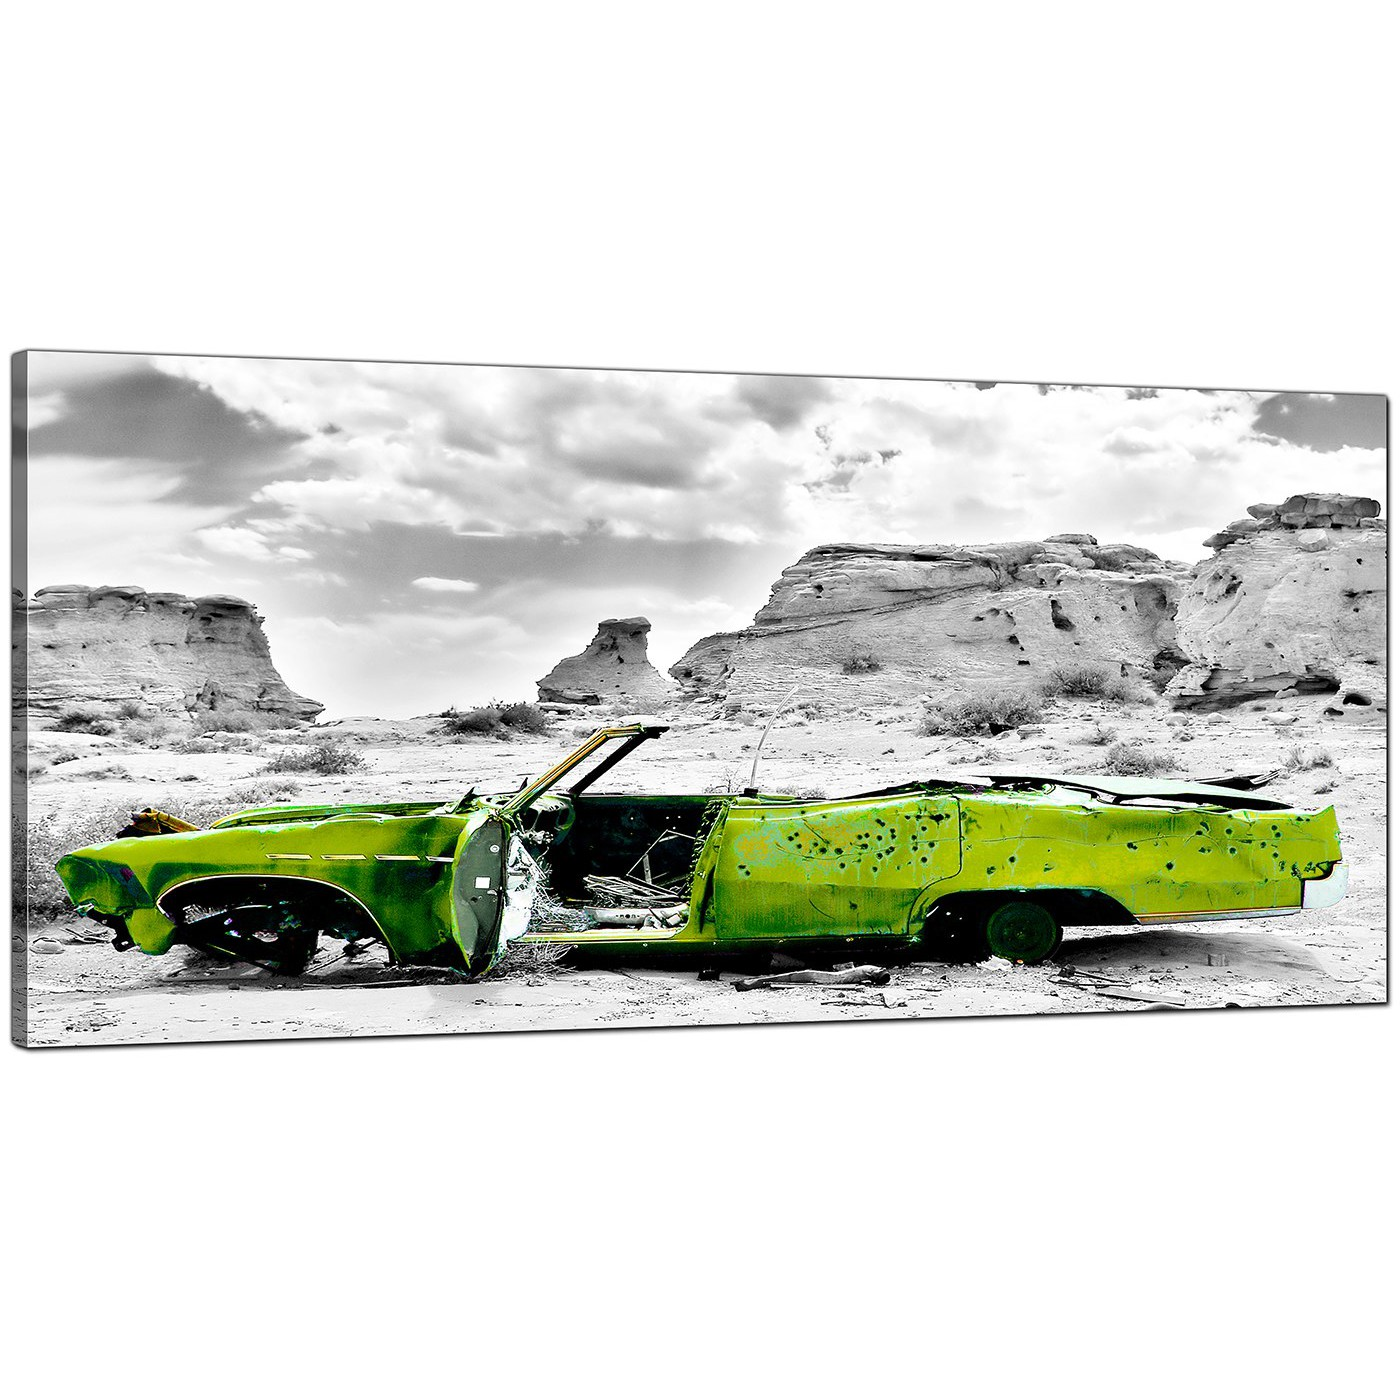 Large Canvas Prints Cheap Cheap Black And White Canvas Wall Art Of A Green Car